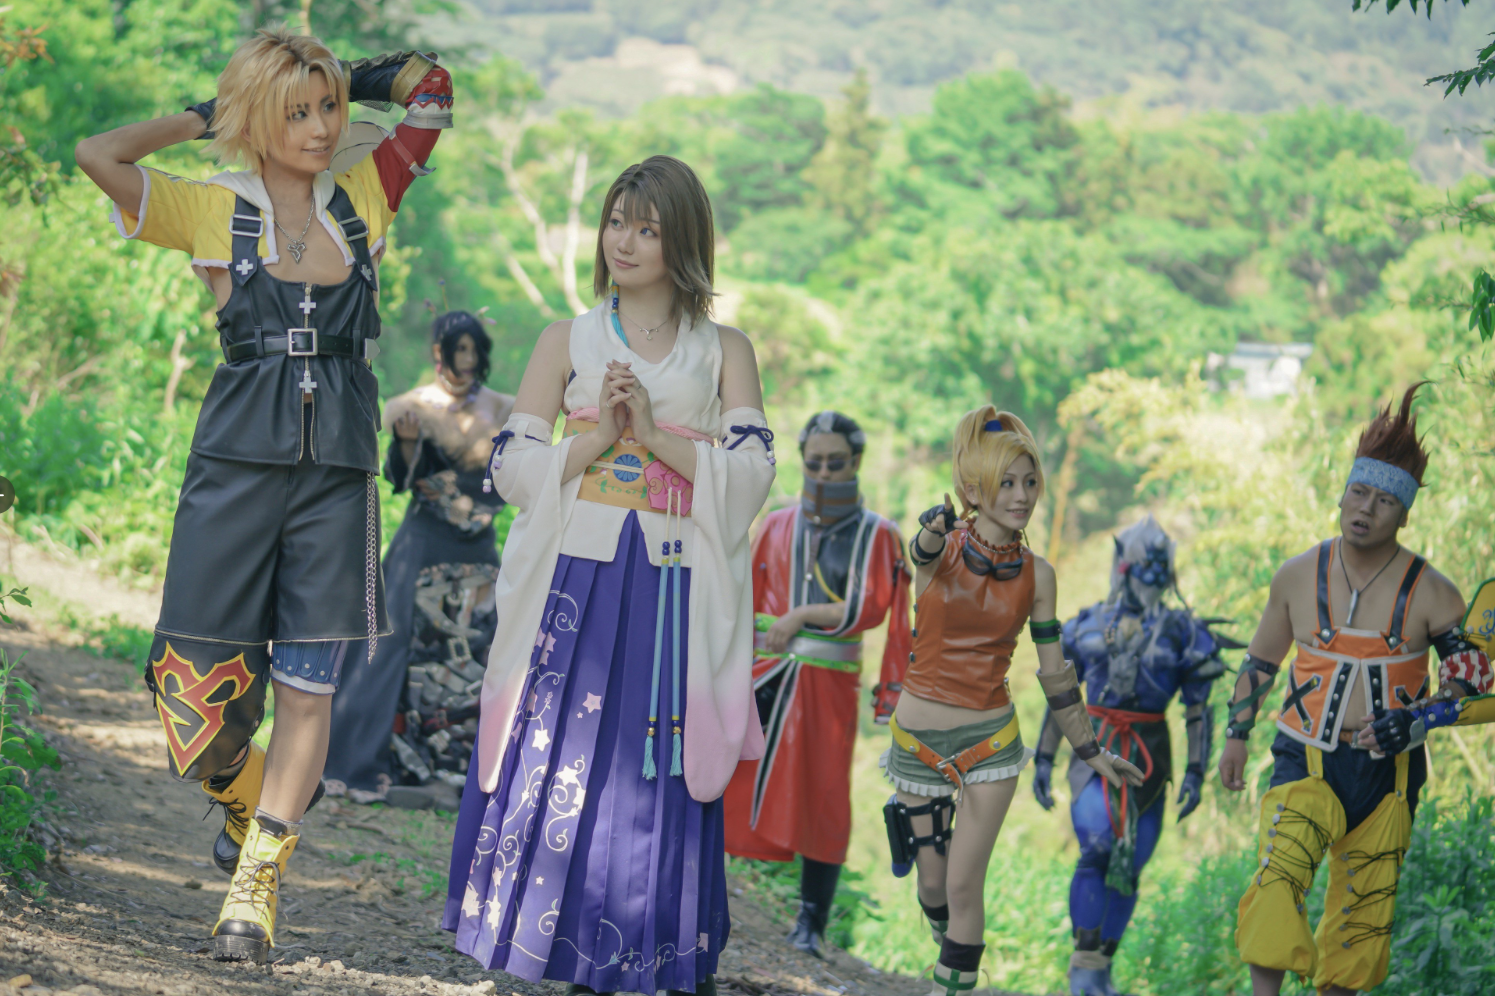 El cosplay grupal ABSOLUTO y DEFINITIVO de Final Fantasy X